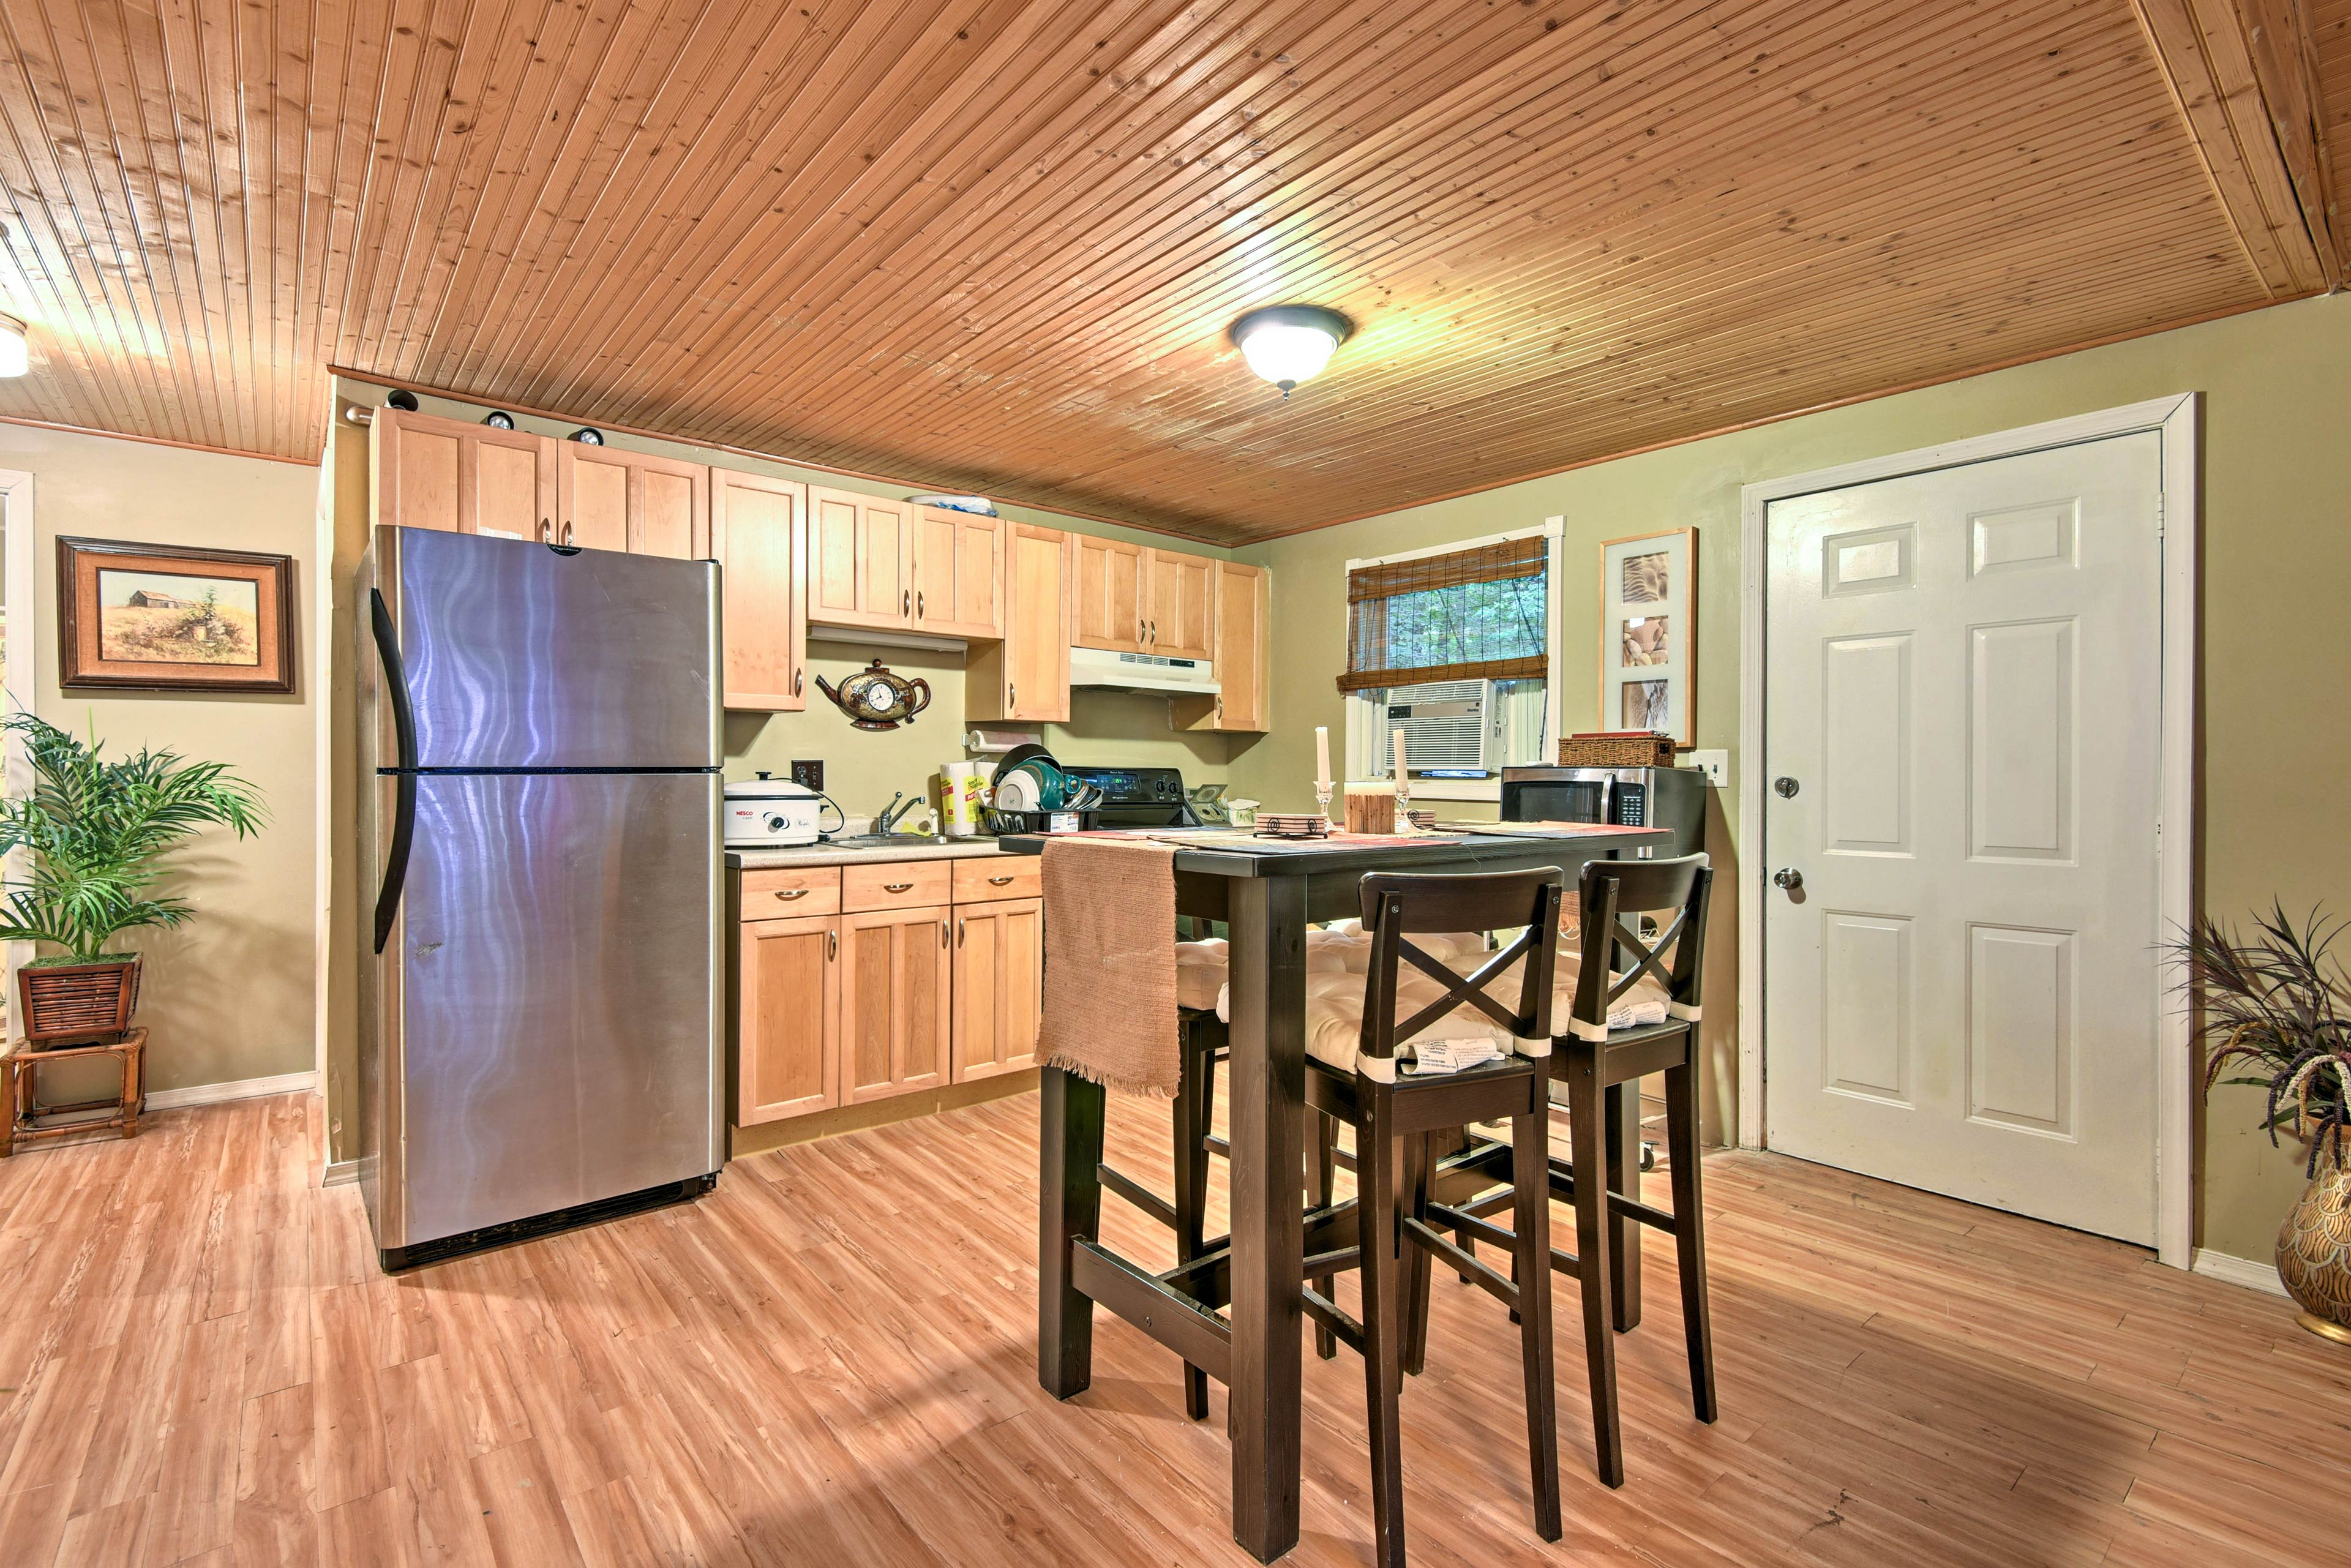 The kitchen comes well-equipped to handle all of your culinary needs.